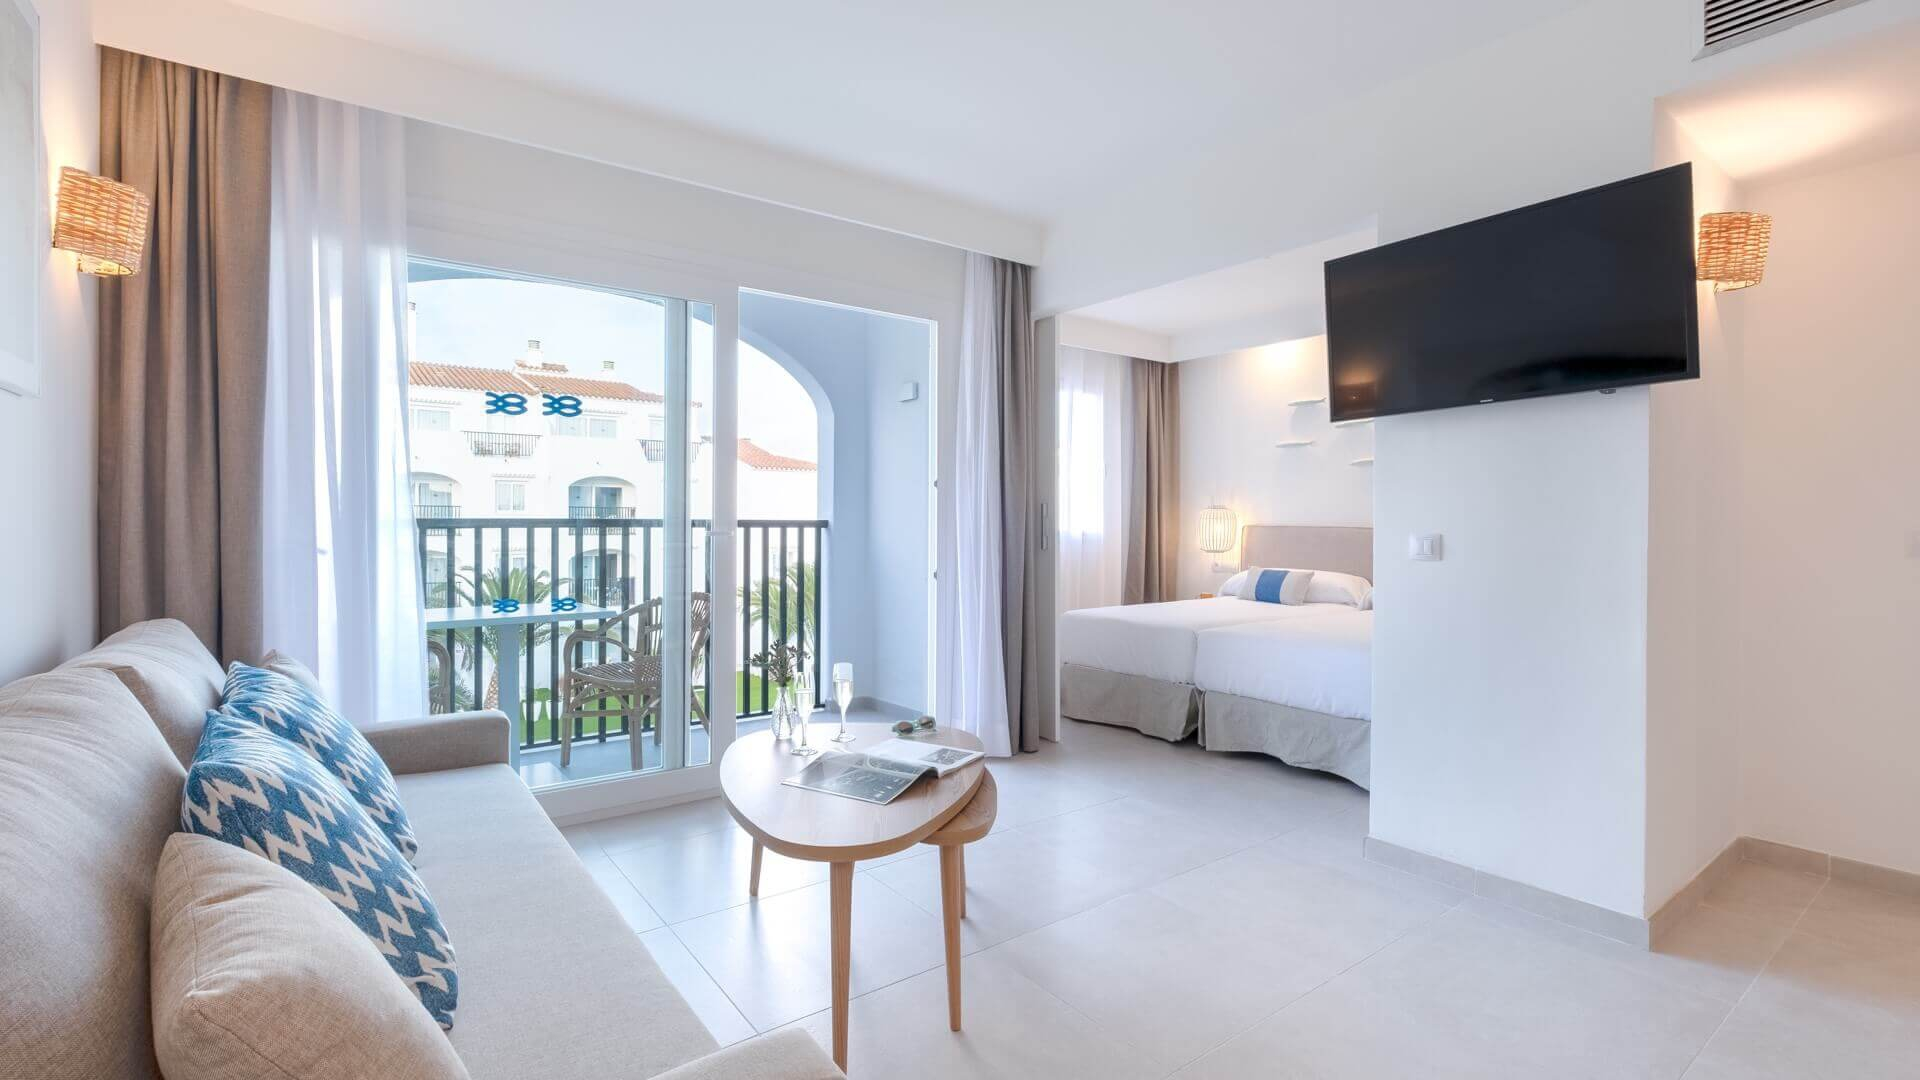 Carema Hotels 360 - Menorca -